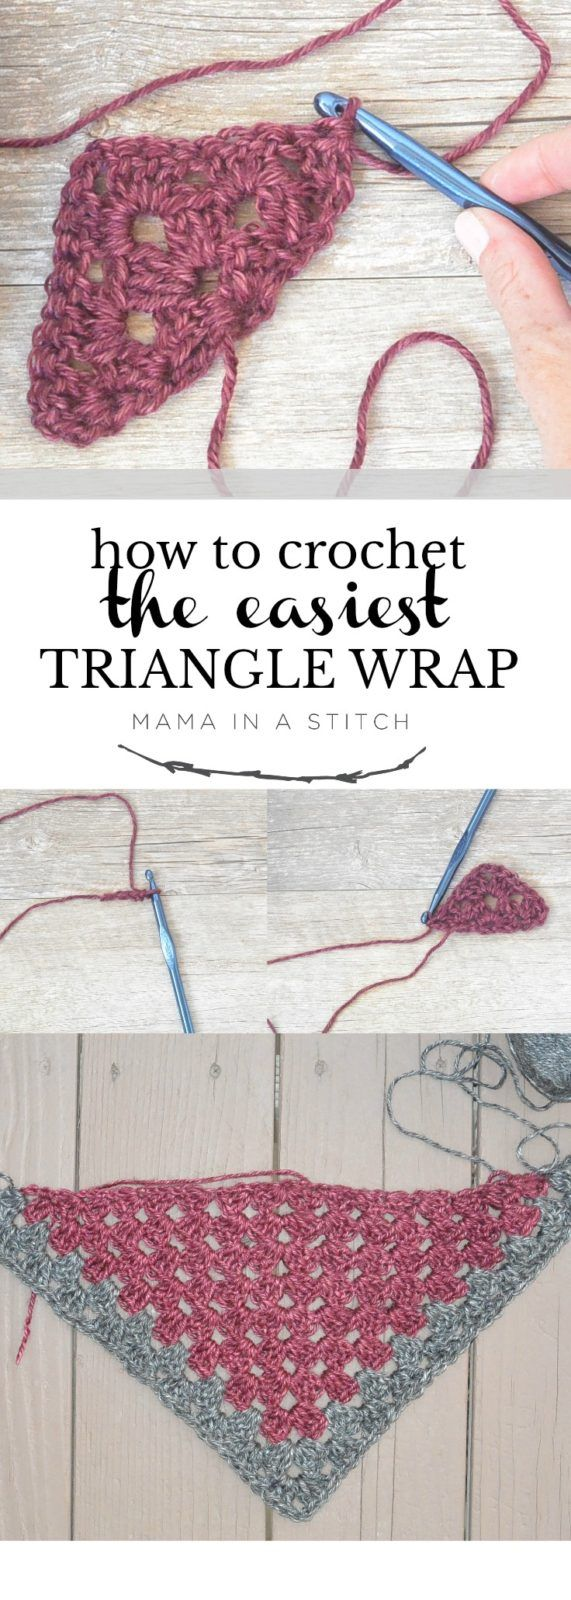 Hi friends! Not too long ago I shared how to make an easy knit triangle wrap, so of course I wanted to give a crochet triangle wrap a whirl. This triangle is so easy to crochet, especially if you're comfortable with double crochet. You might remember this almost triangle wrap (hehe) that I made a while back, and it was easy too because the shaping was done with simple decreases at the end of each row. However, this wrap is warmer and works up quickly which I love. And while there'...